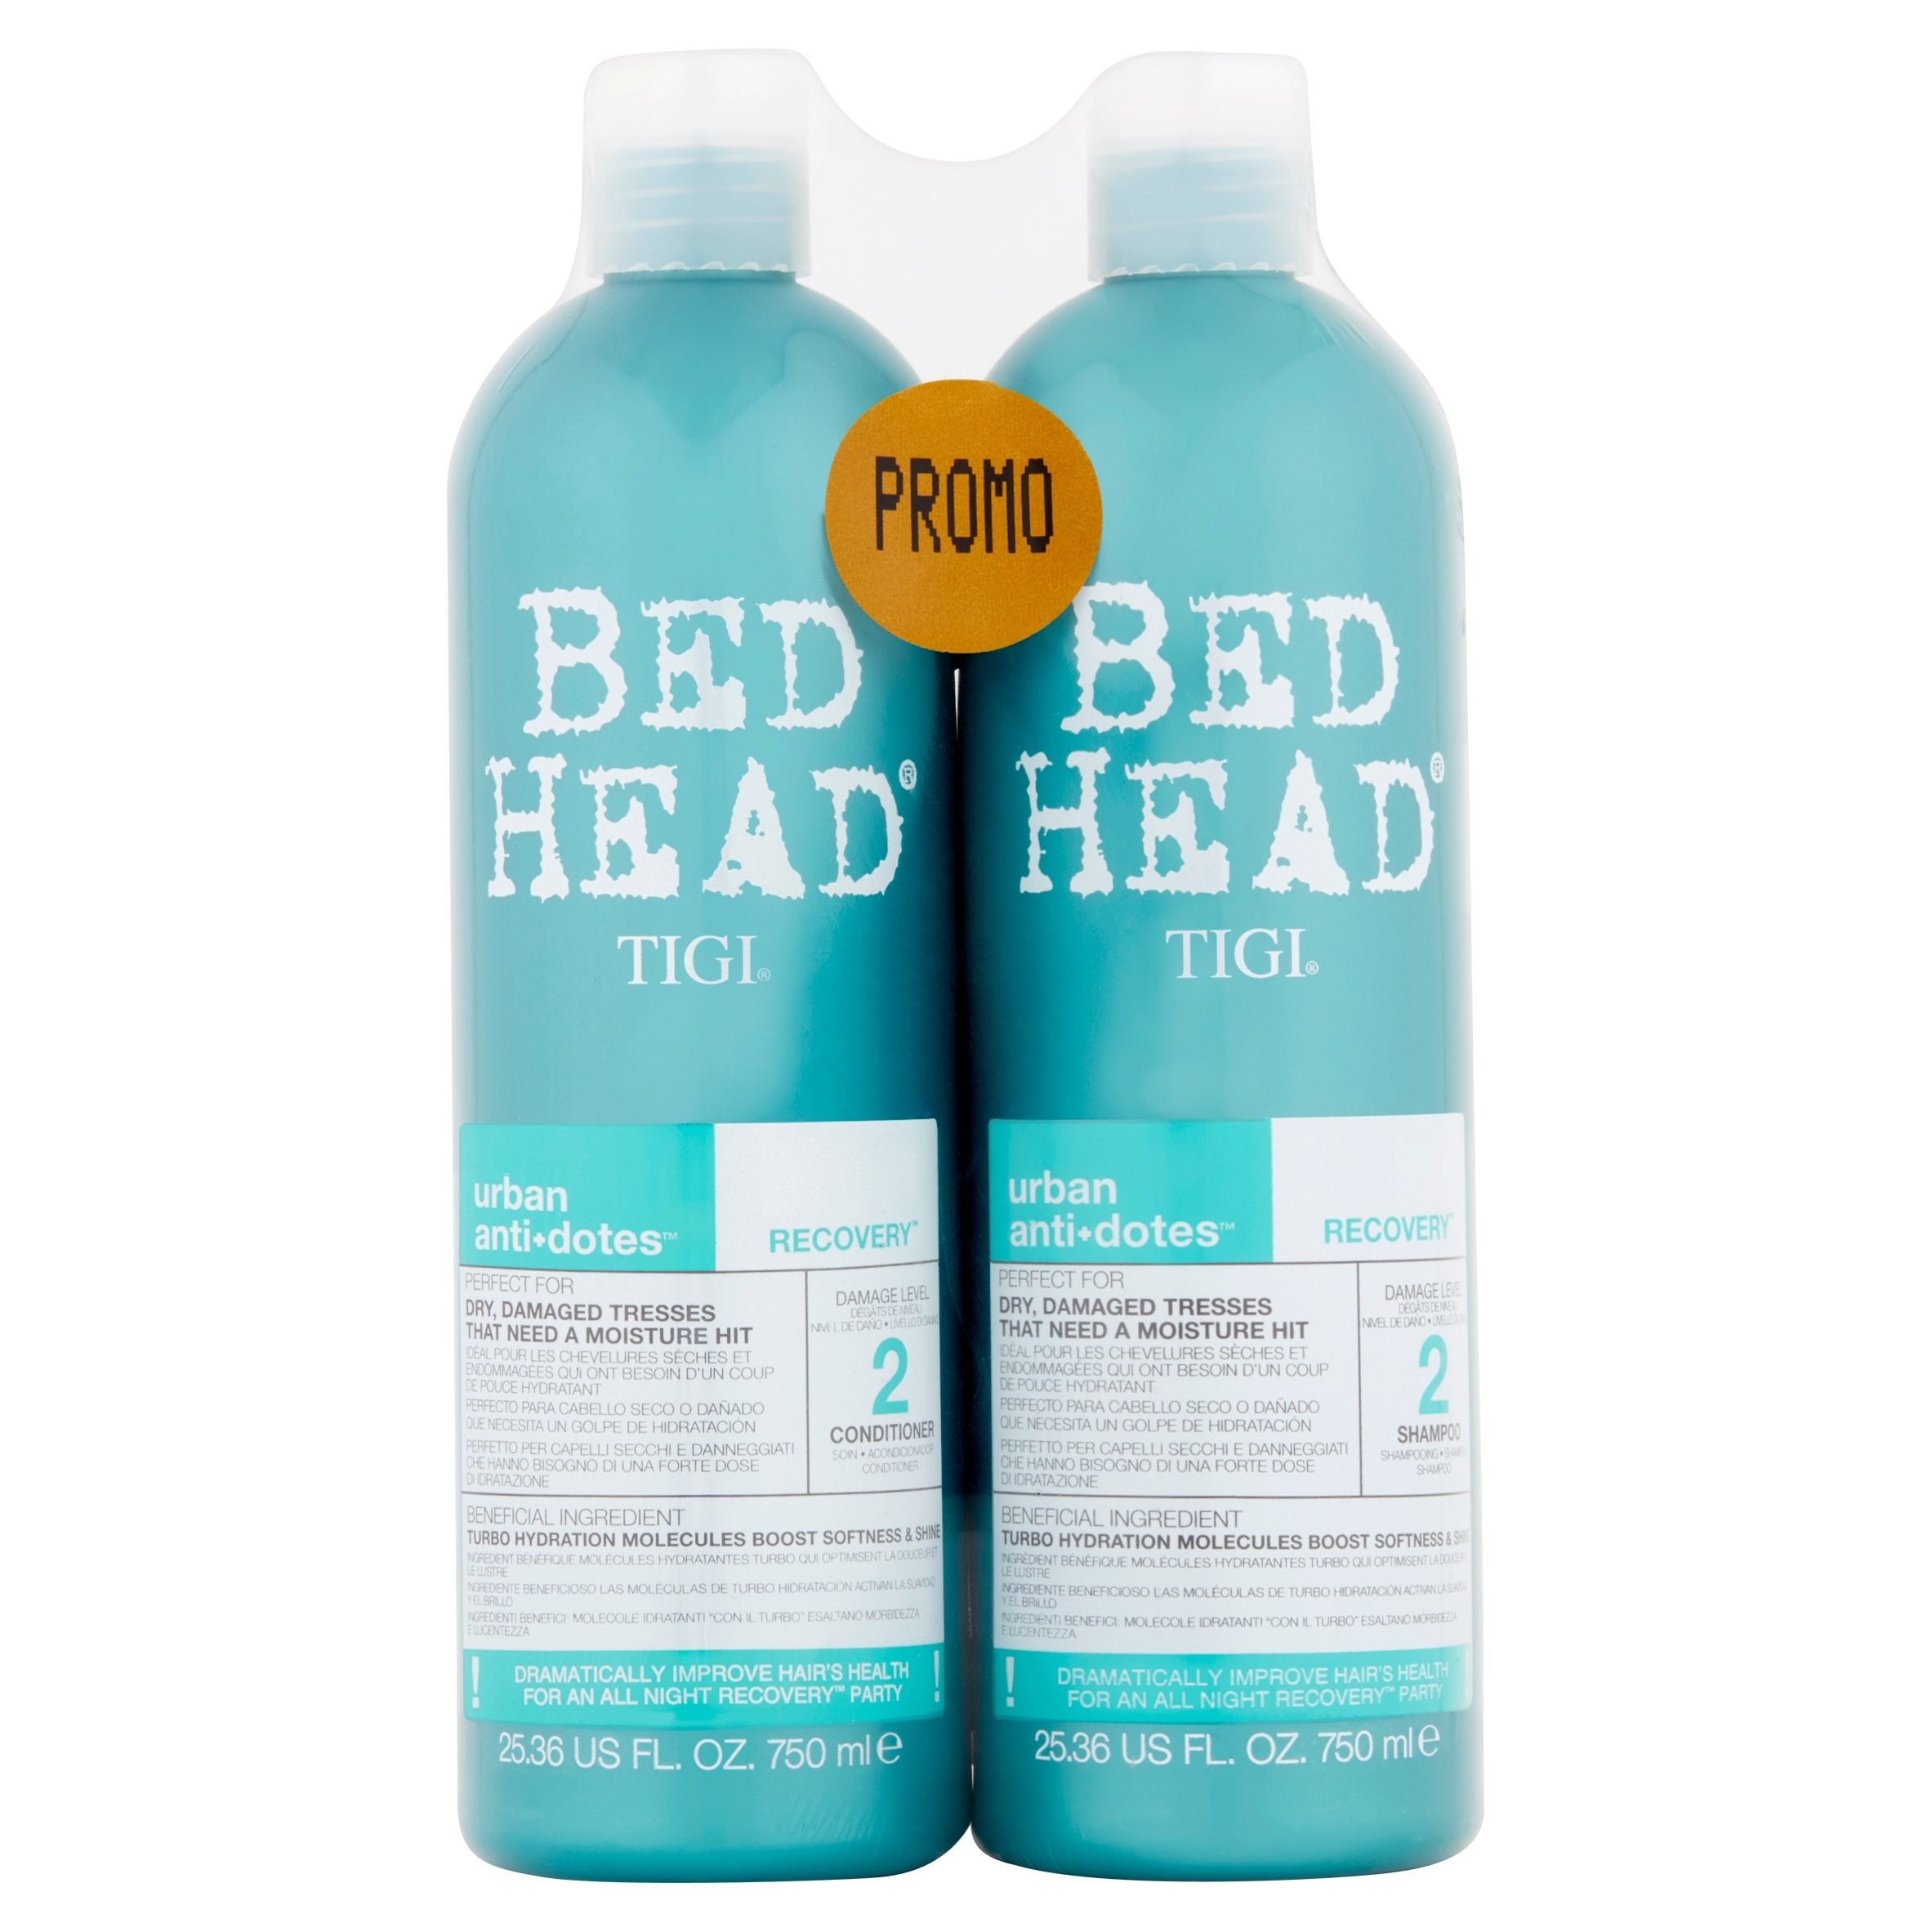 Tigi Bed Head Urban Anti+Dotes Damage Level 2 Recovery Shampoo and Conditioner, 25.36 fl oz, 2 pack